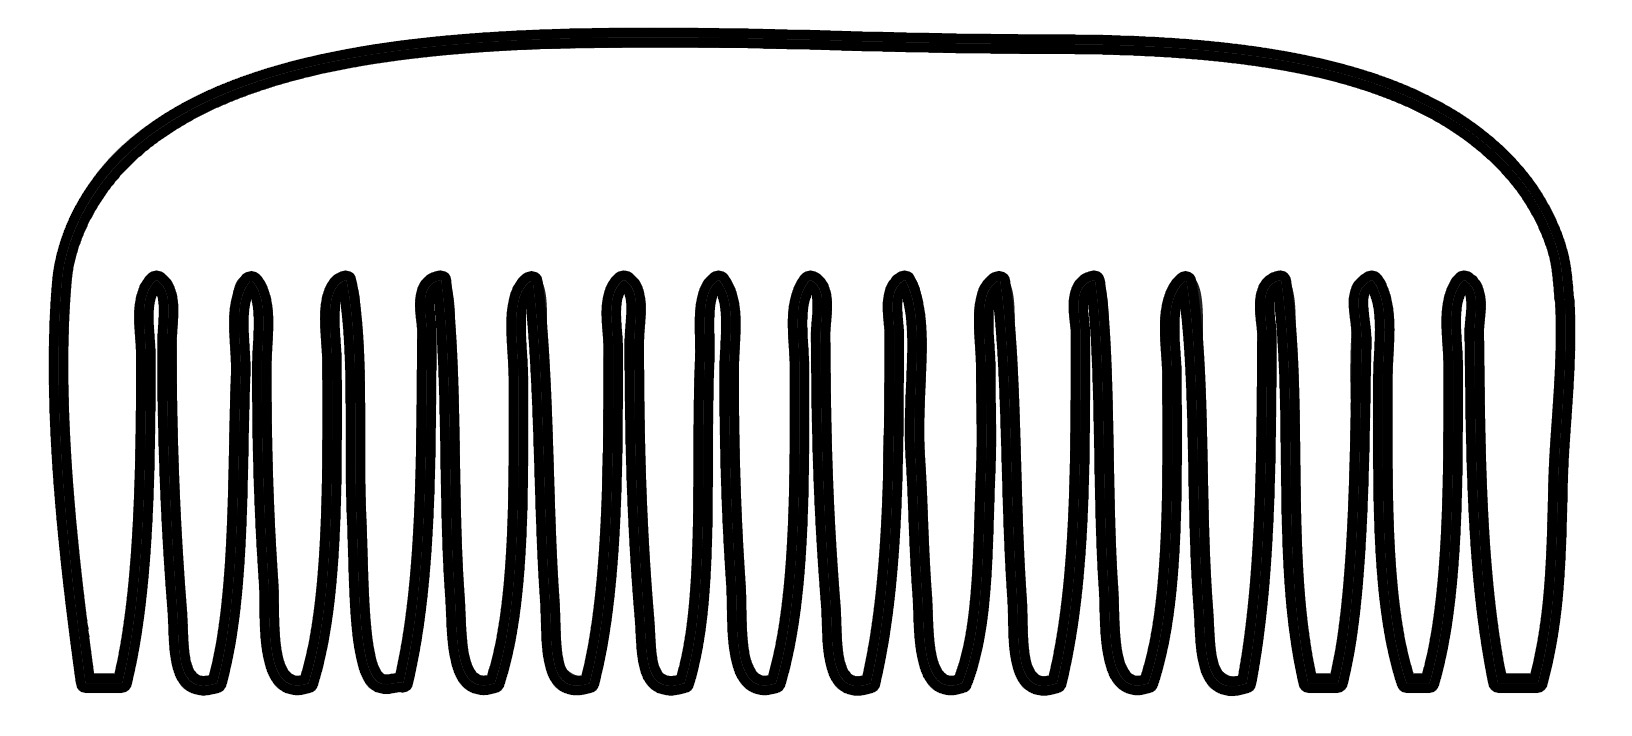 Free Comb Cliparts, Download Free Clip Art, Free Clip Art on.